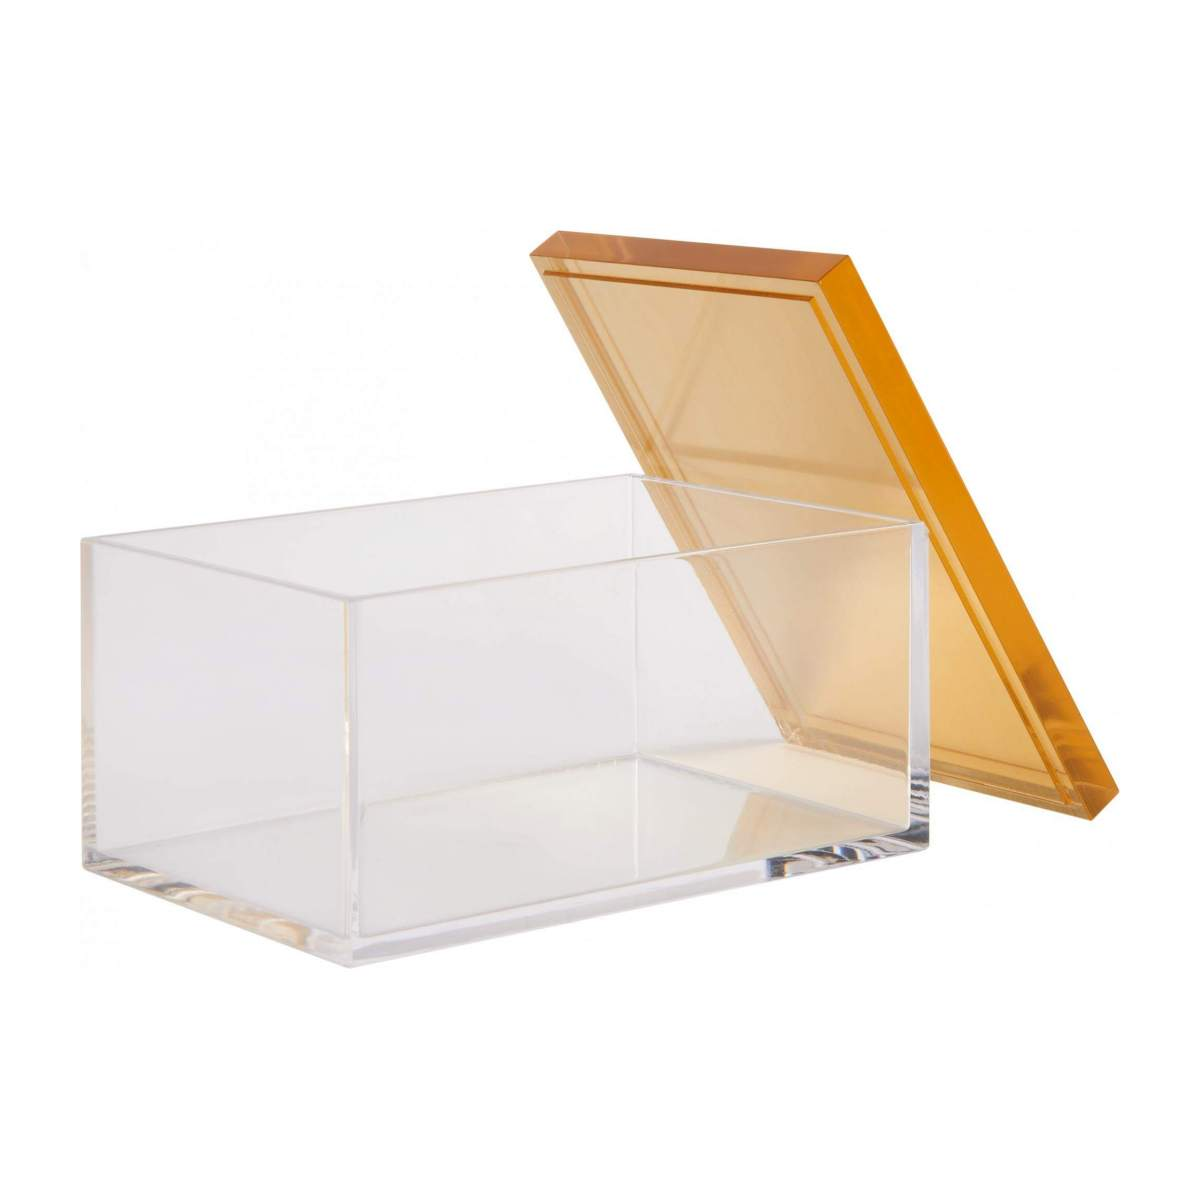 Box made of acrylic 12cm, transparent and gold n°3